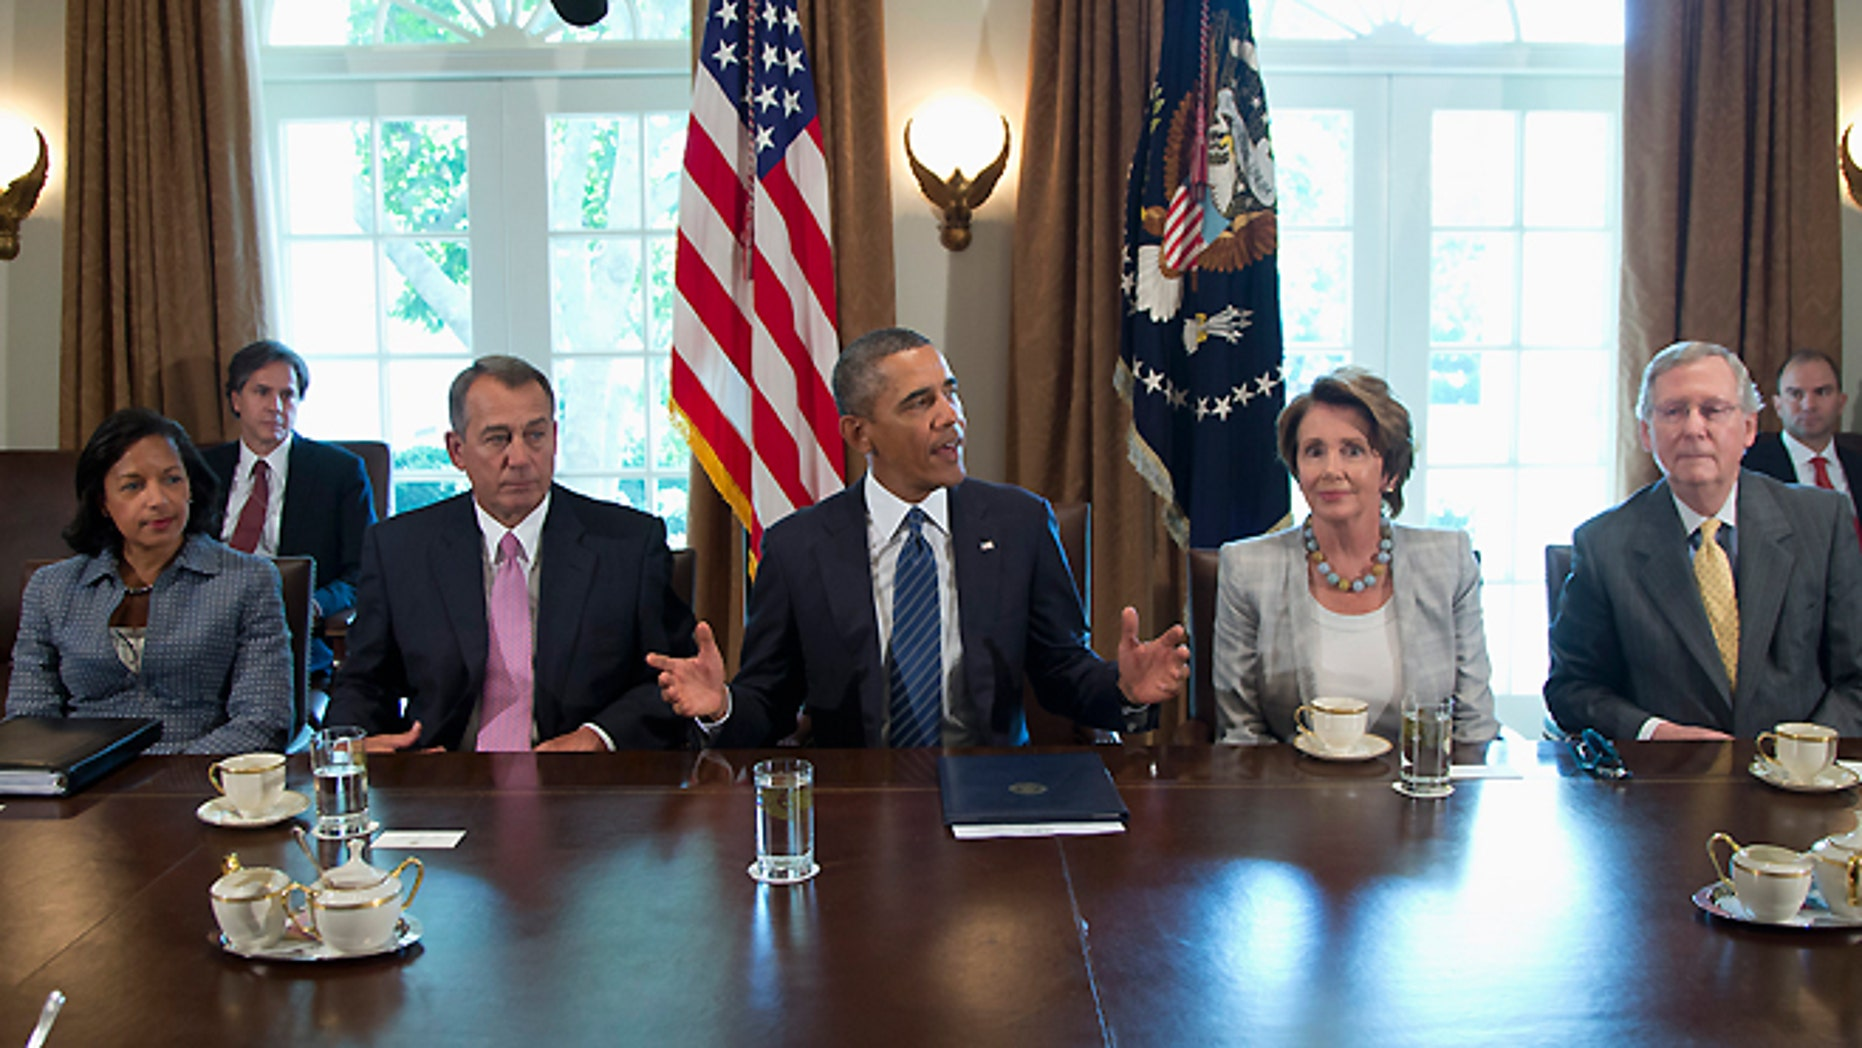 Sept. 3, 2013: President Obama speaks to media in the Cabinet Room of the White House in Washington before a meeting with Congressional leaders to discuss the situation in Syria. From left are, National Security Adviser Susan Rice, House Speaker John Boehner of Ohio, the president, House Minority Leader Nancy Pelosi of Calif., and Senate Minority Leader Mitch McConnell of Ky.